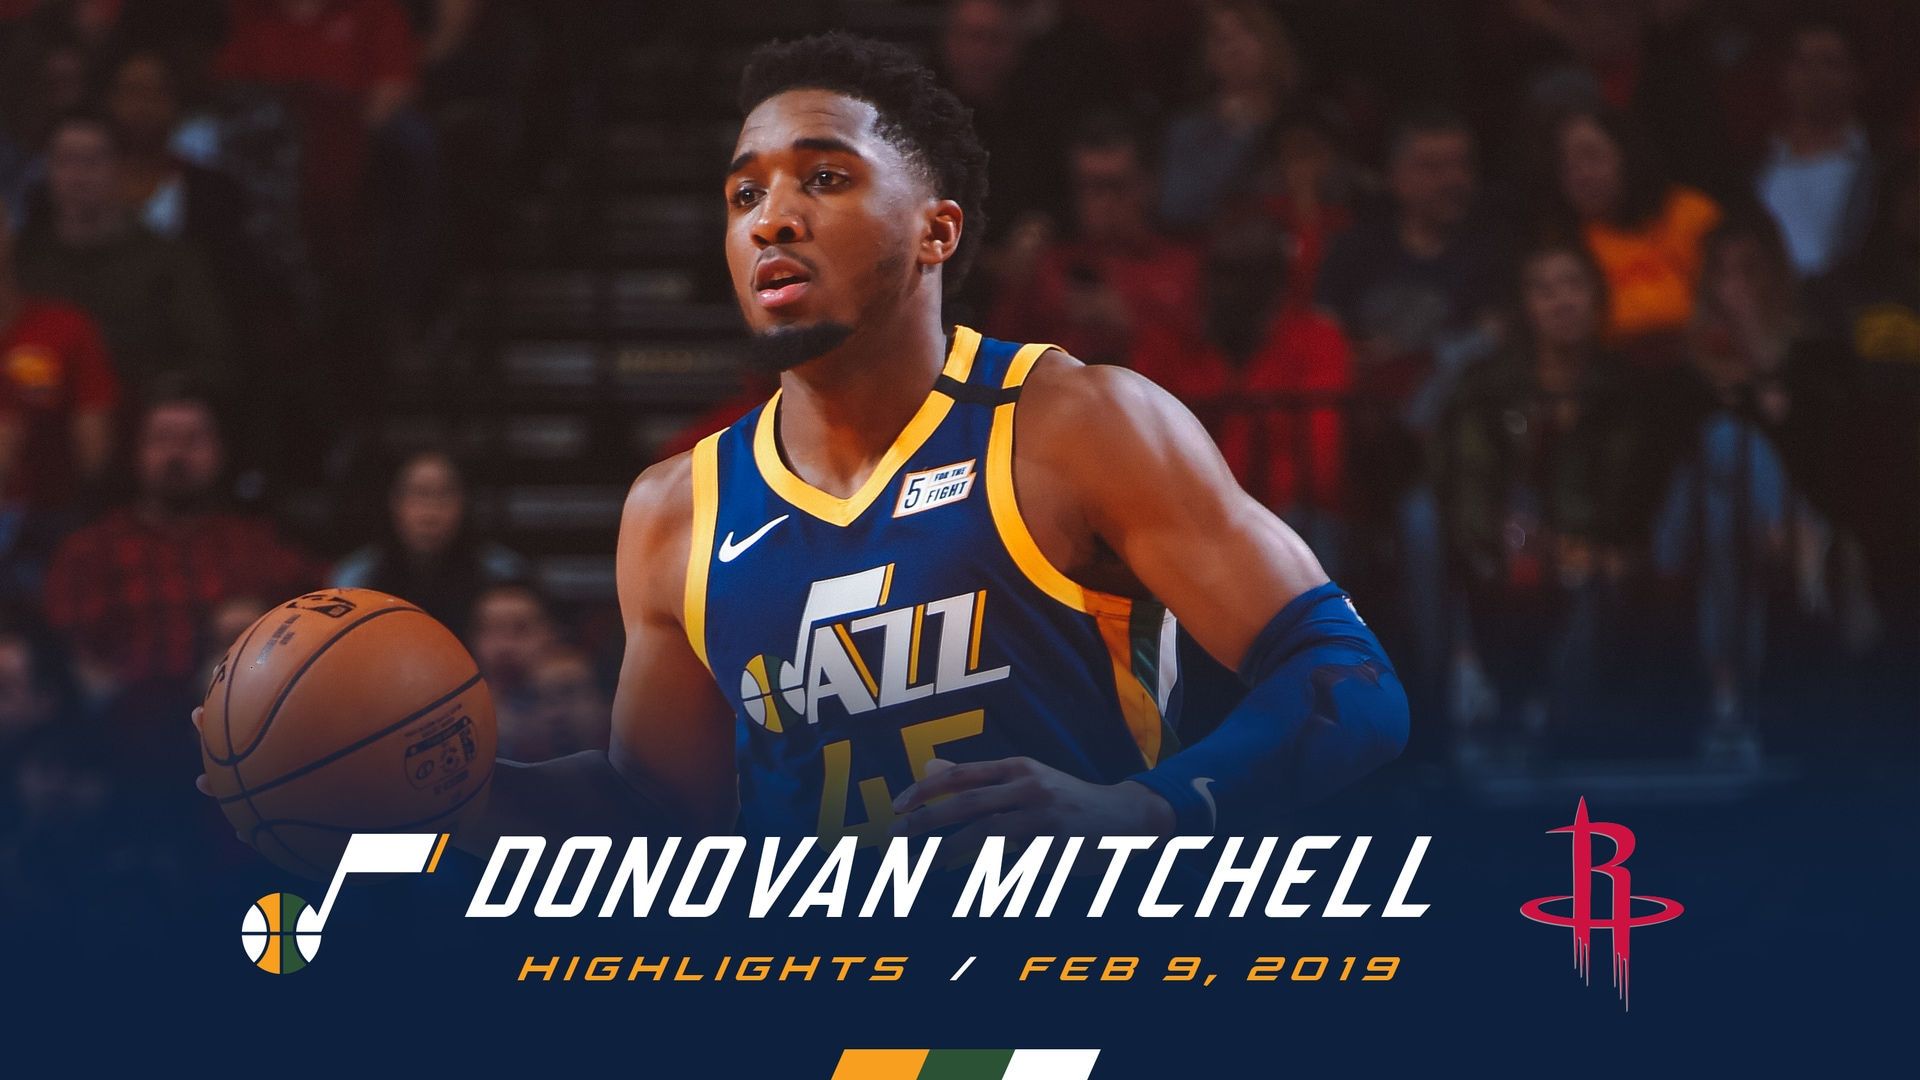 Highlights: Donovan Mitchell—24 points, 6 assists